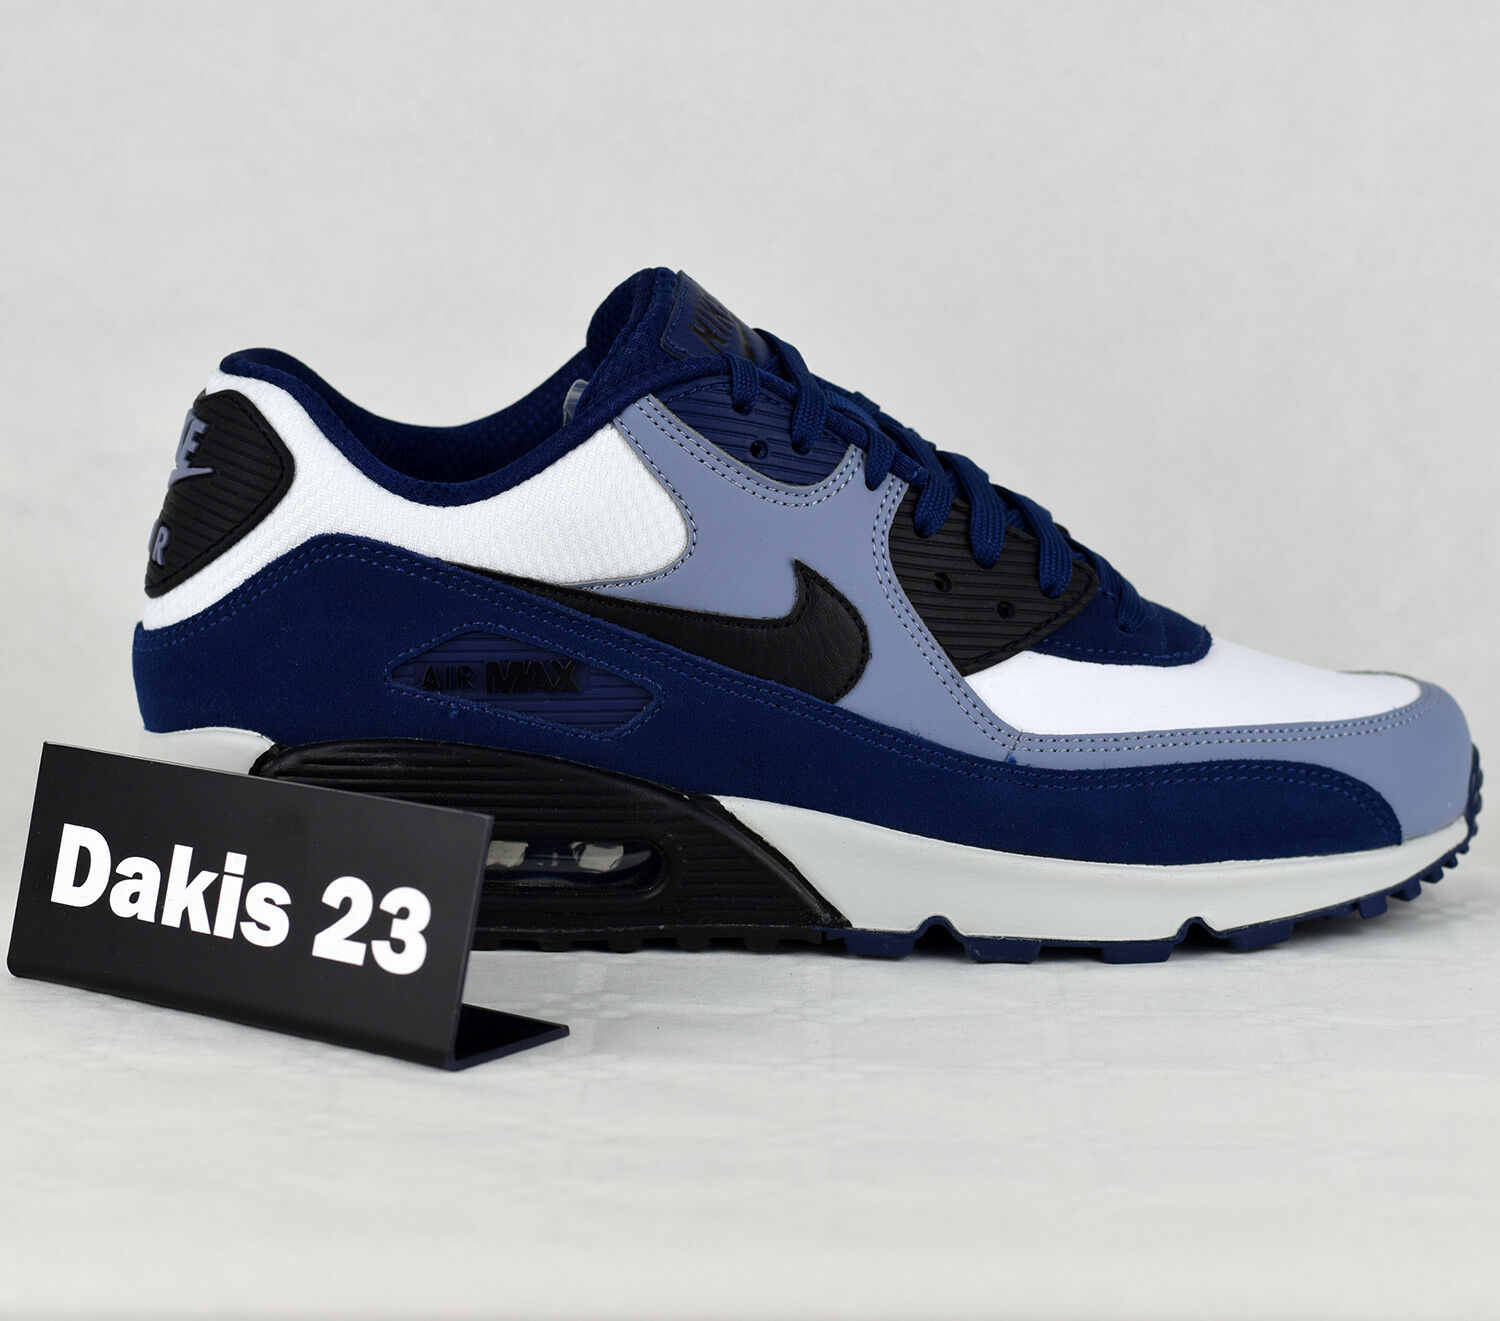 Nike Air Max 90 Pelle Uomo Lifestyle Fashion  New New  Blue Void 302519-400 c2a3e2